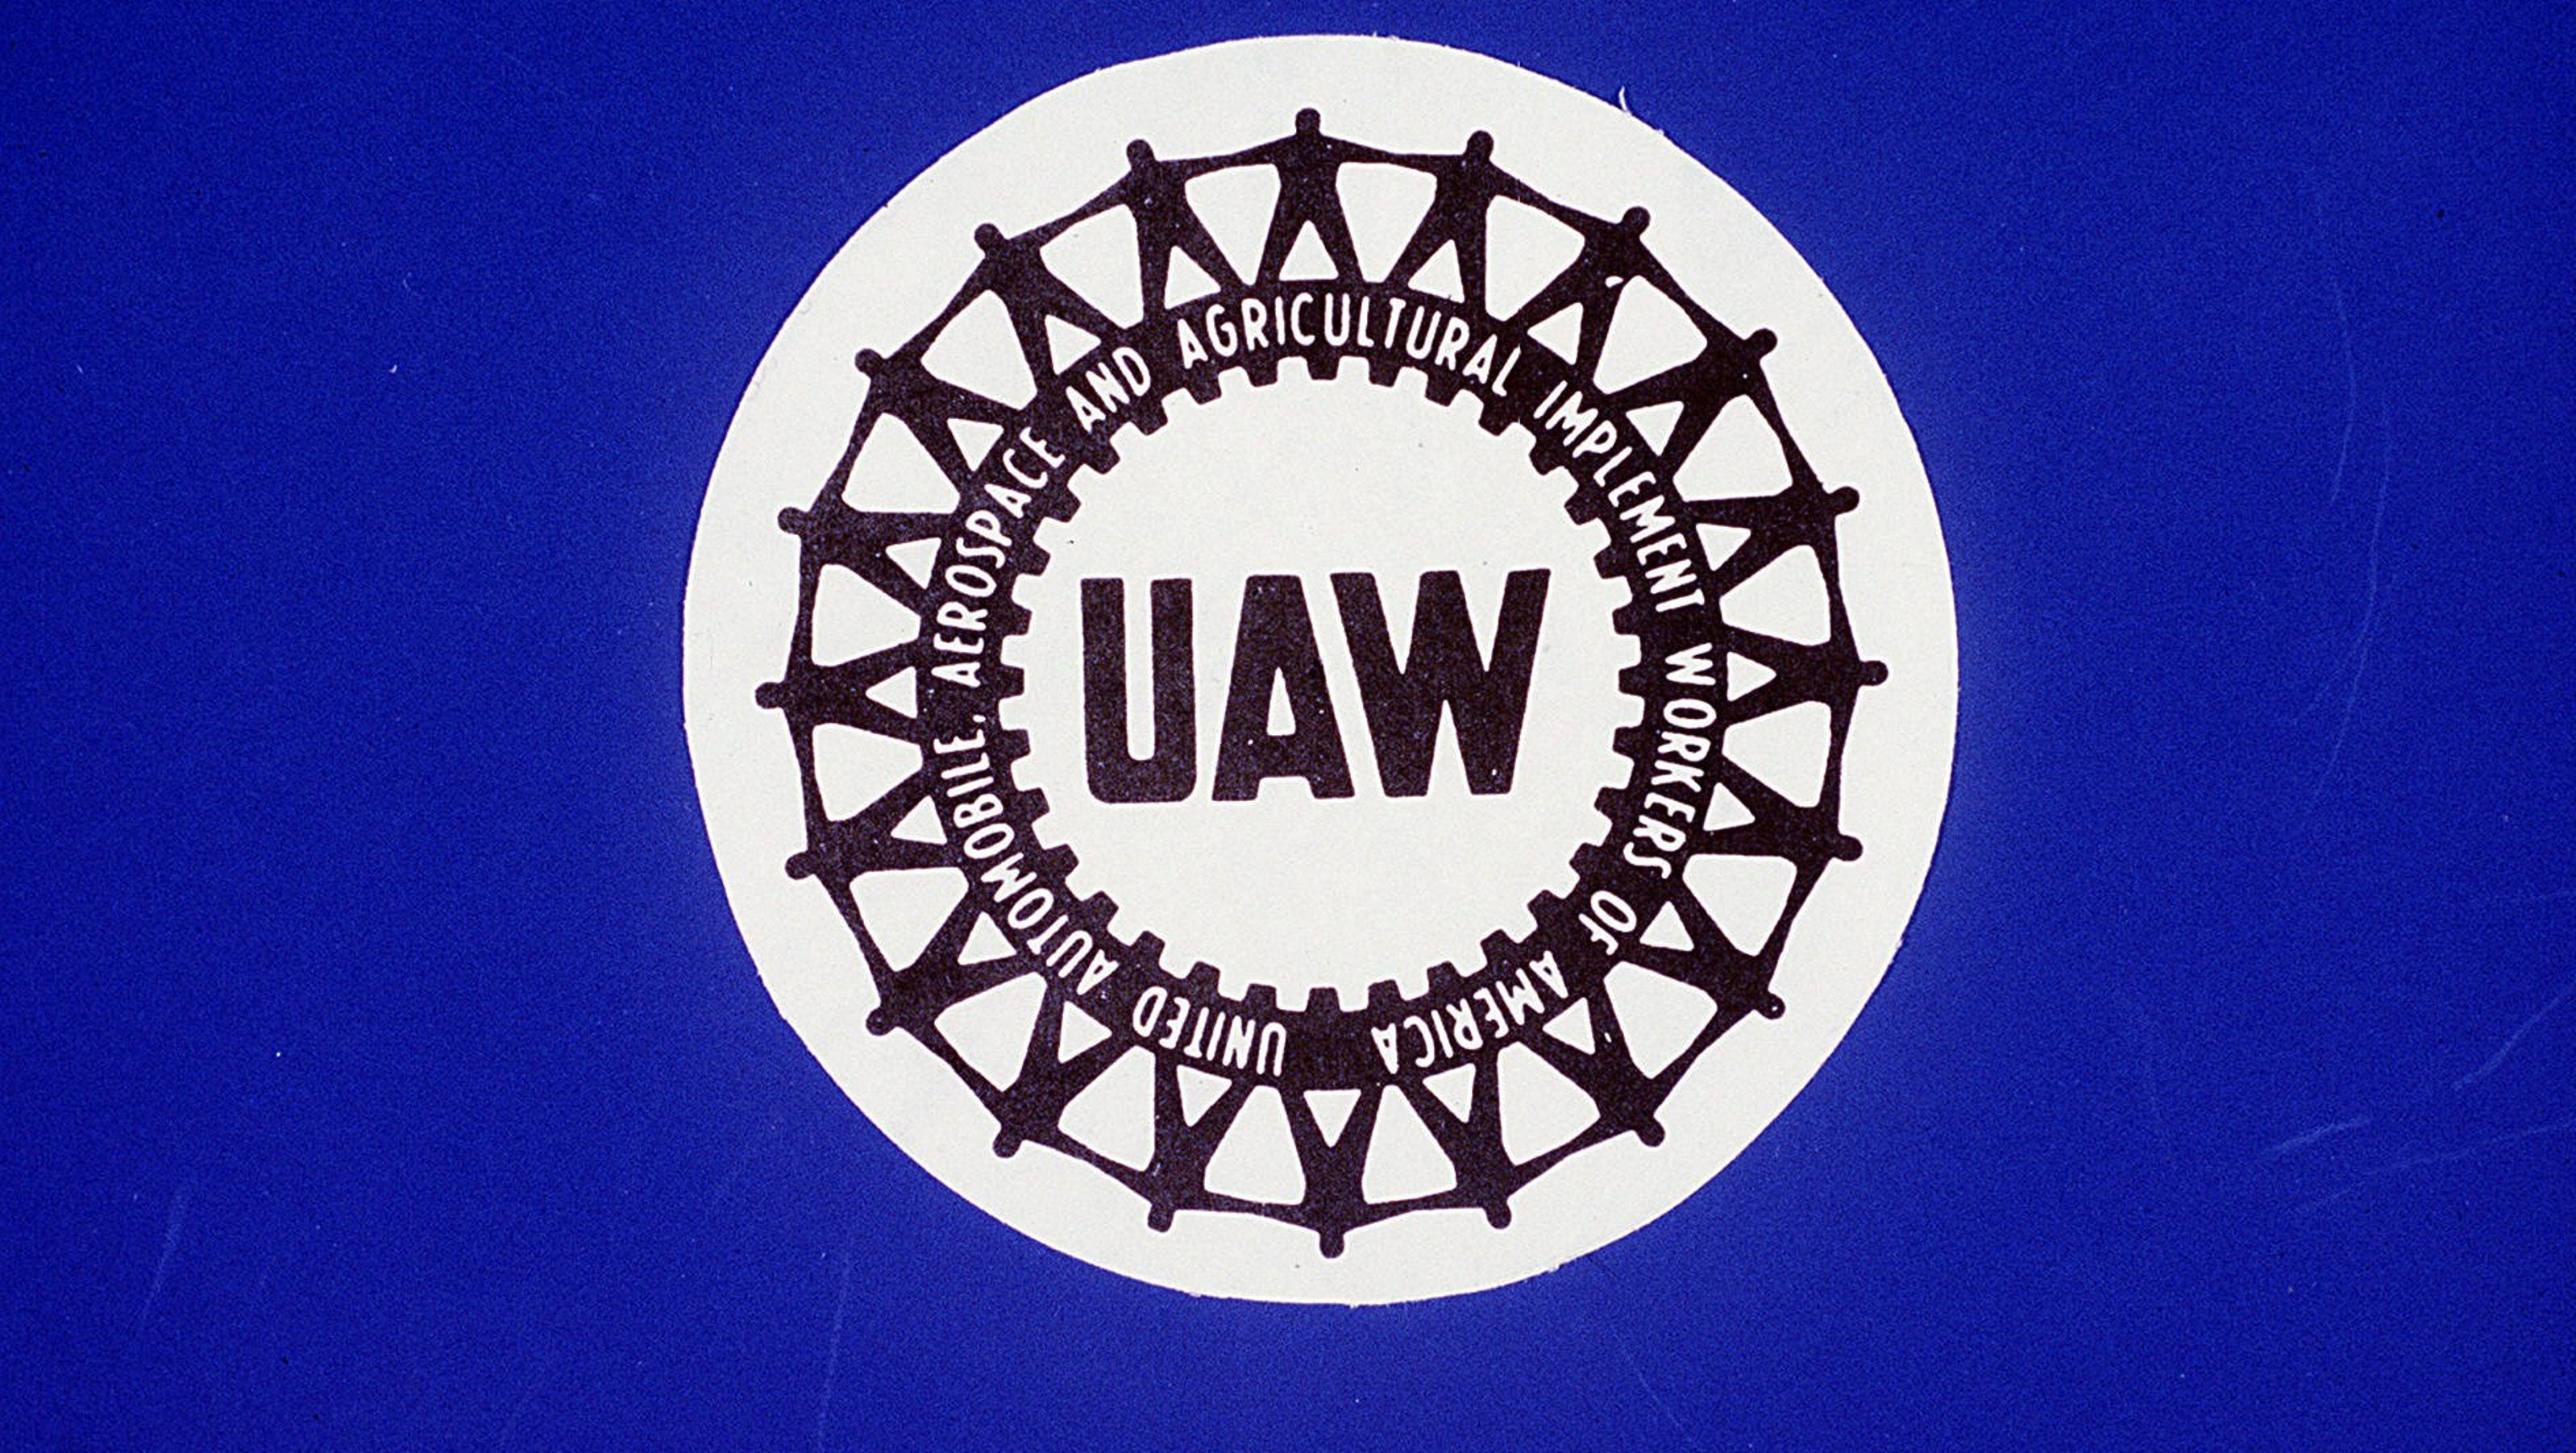 united auto workers The international union, united automobile, aerospace, and agricultural implement workers of america, better known as the united automobile workers (uaw), is an american labor union that represents workers in the united states (including puerto rico) and canadait was founded as part of the congress of industrial organizations (cio) in the 1930s and grew rapidly from 1936 to the 1950s.